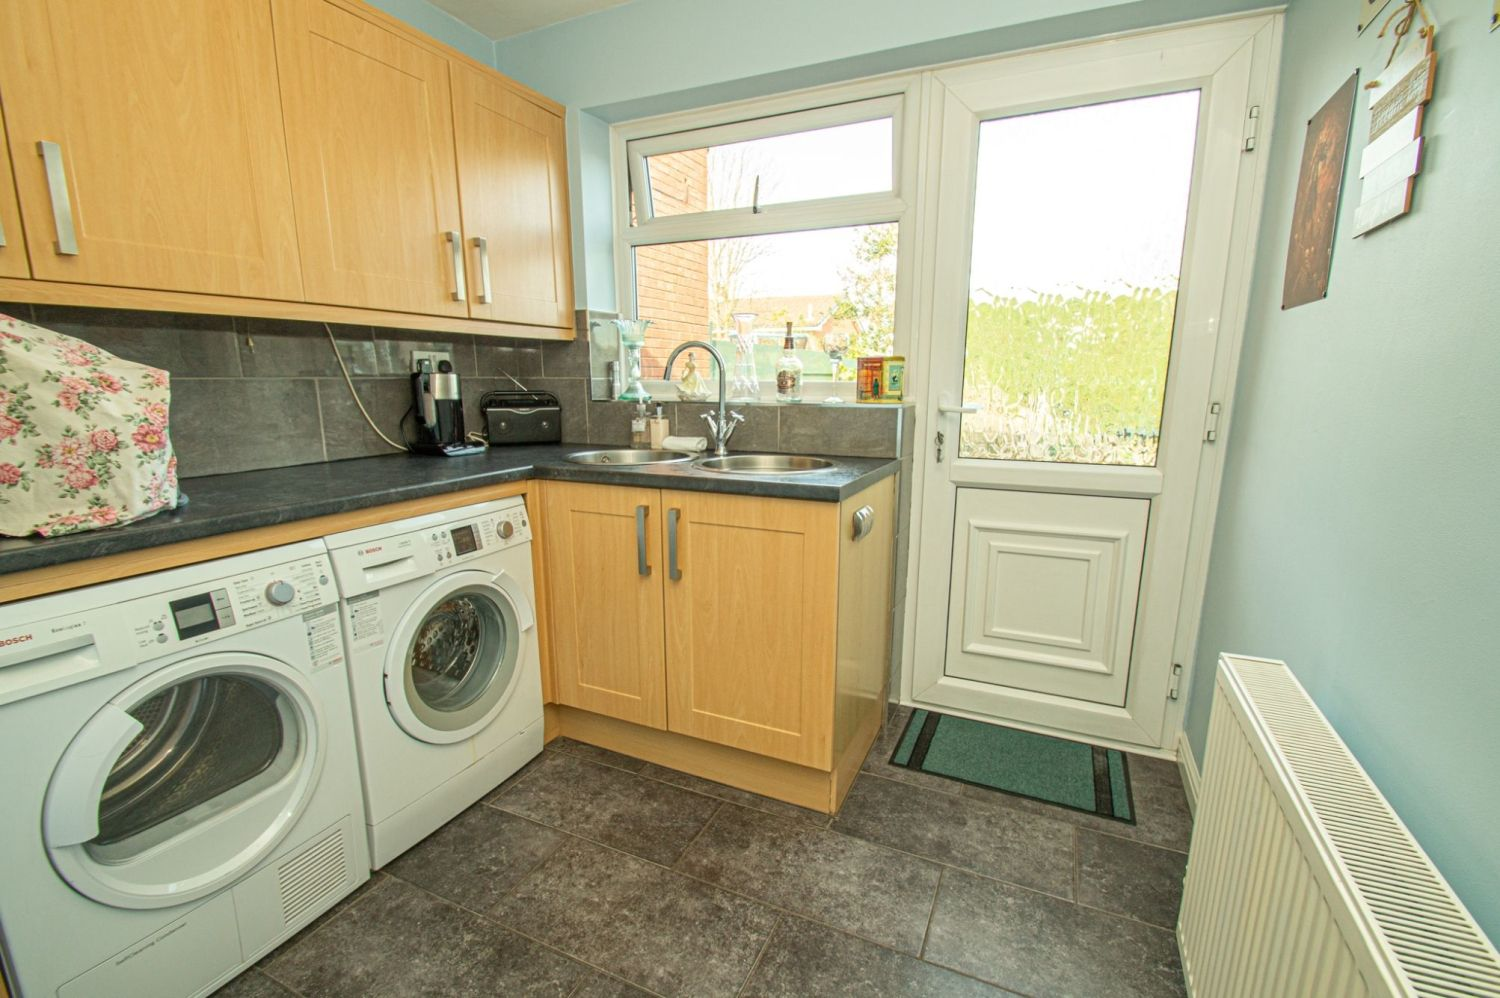 3 bed detached for sale in Broomehill Close, Brierley Hill 7